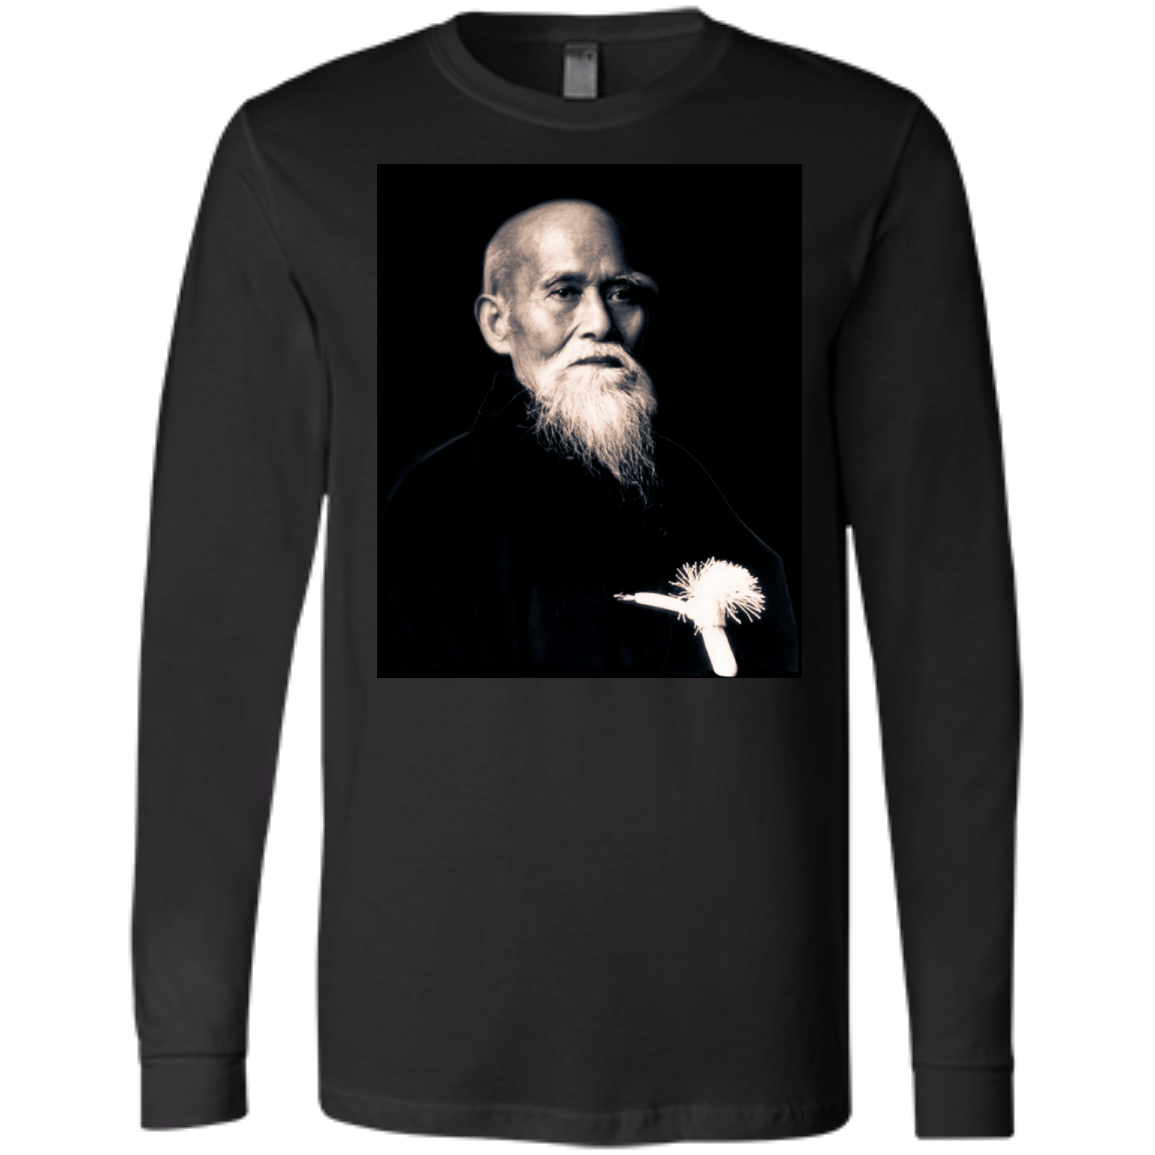 Ōsensei Morihei Ueshiba Long Sleeve - Martial Arts, Brazilian Jiujitsu, Karate, Muay Thai Shirts